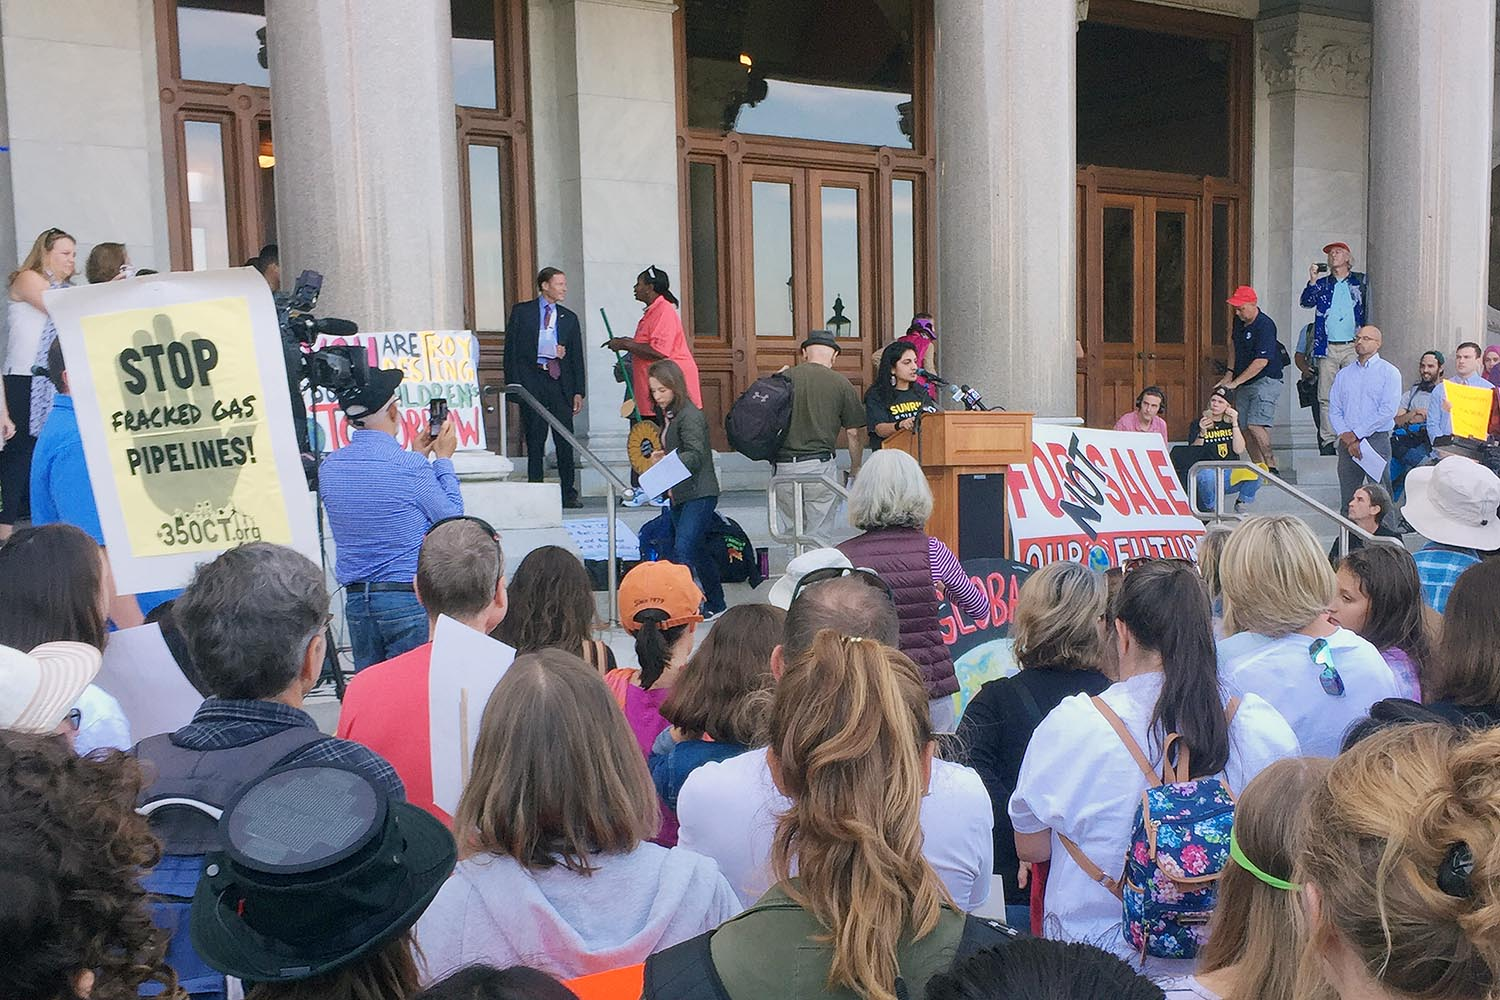 An additional 40 Wesleyan students rallied at the climate strike in Hartford. Sanya Bery '20 spoke there too  :)